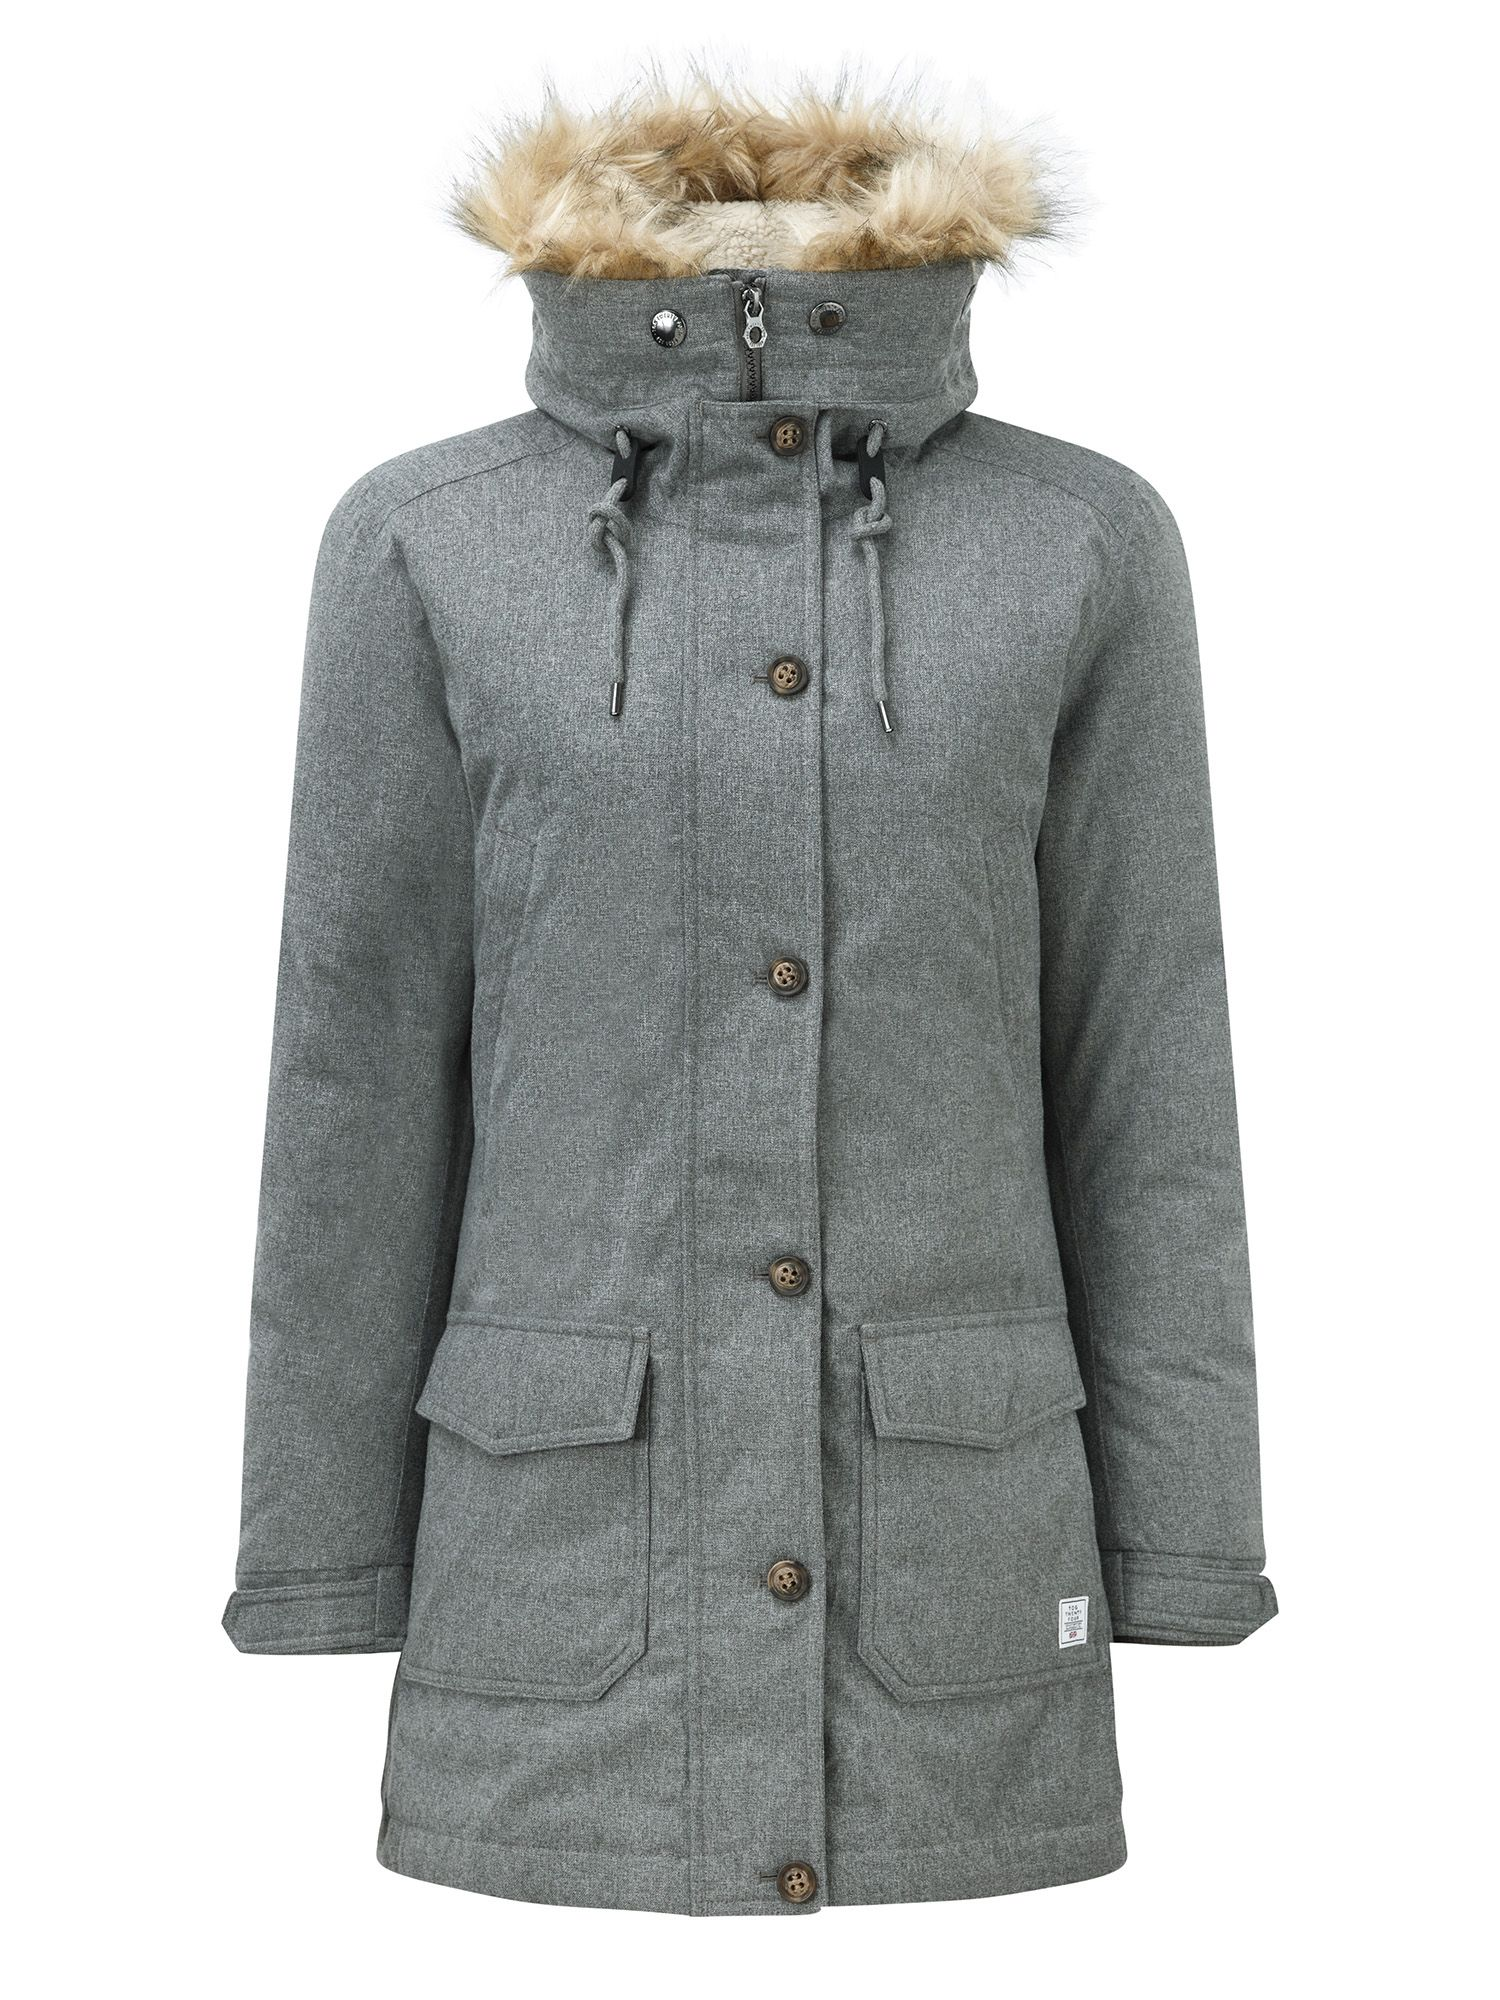 Tog 24 Kelso Womens Milatex/Down Parka Jacket, Grey